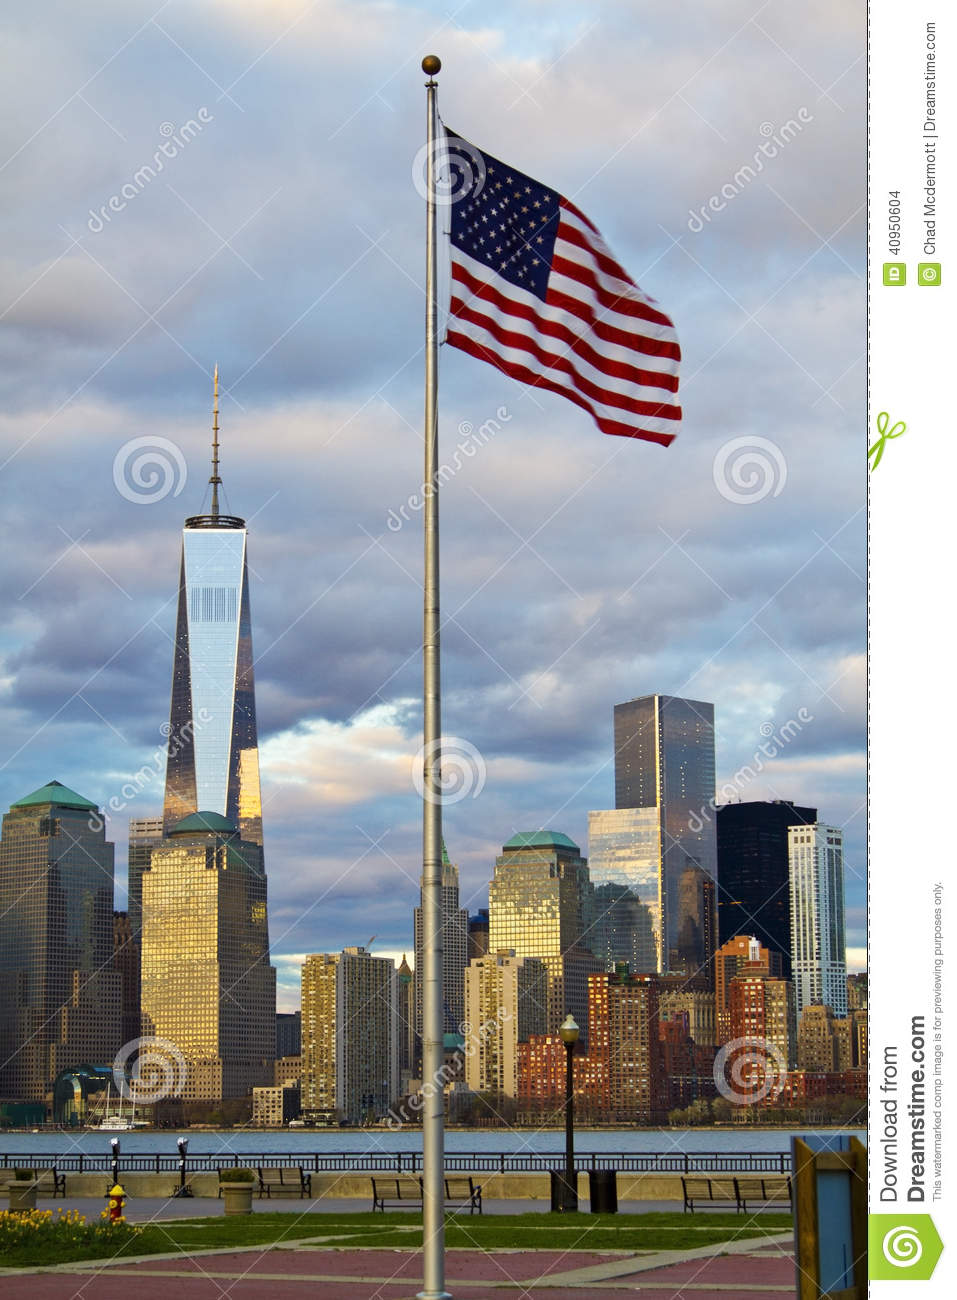 ... Tower in Lower Manhattan New York City skyline with American Flag